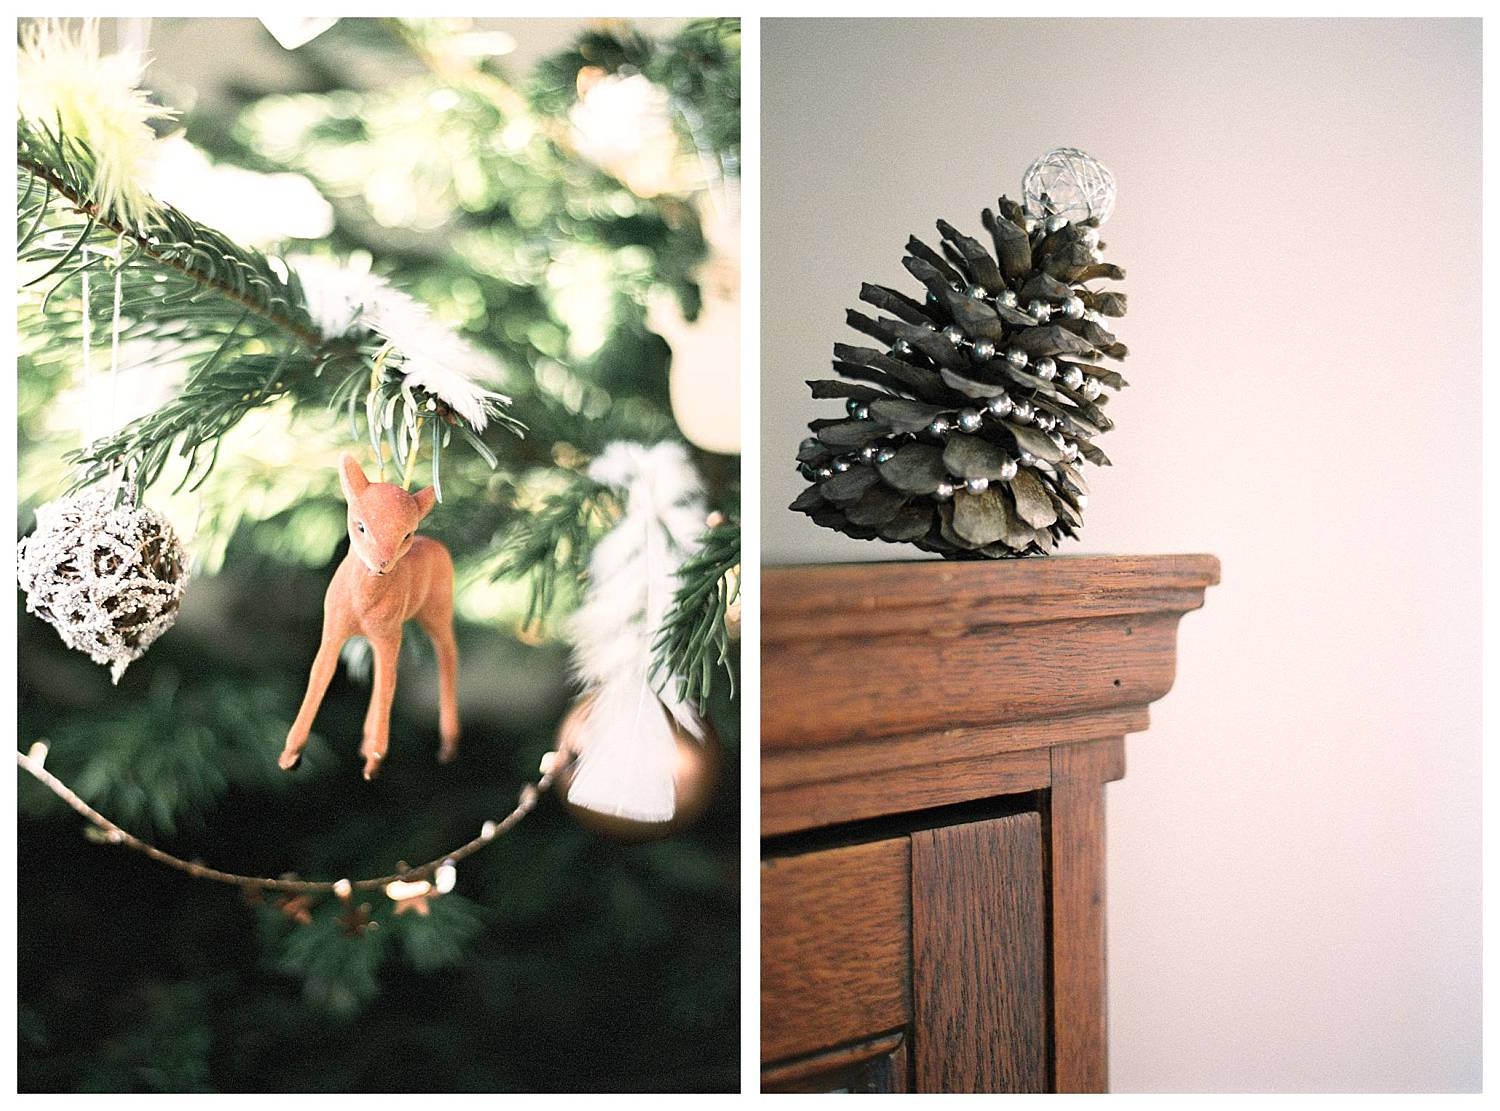 Pine cone and Christmas tree inspiration